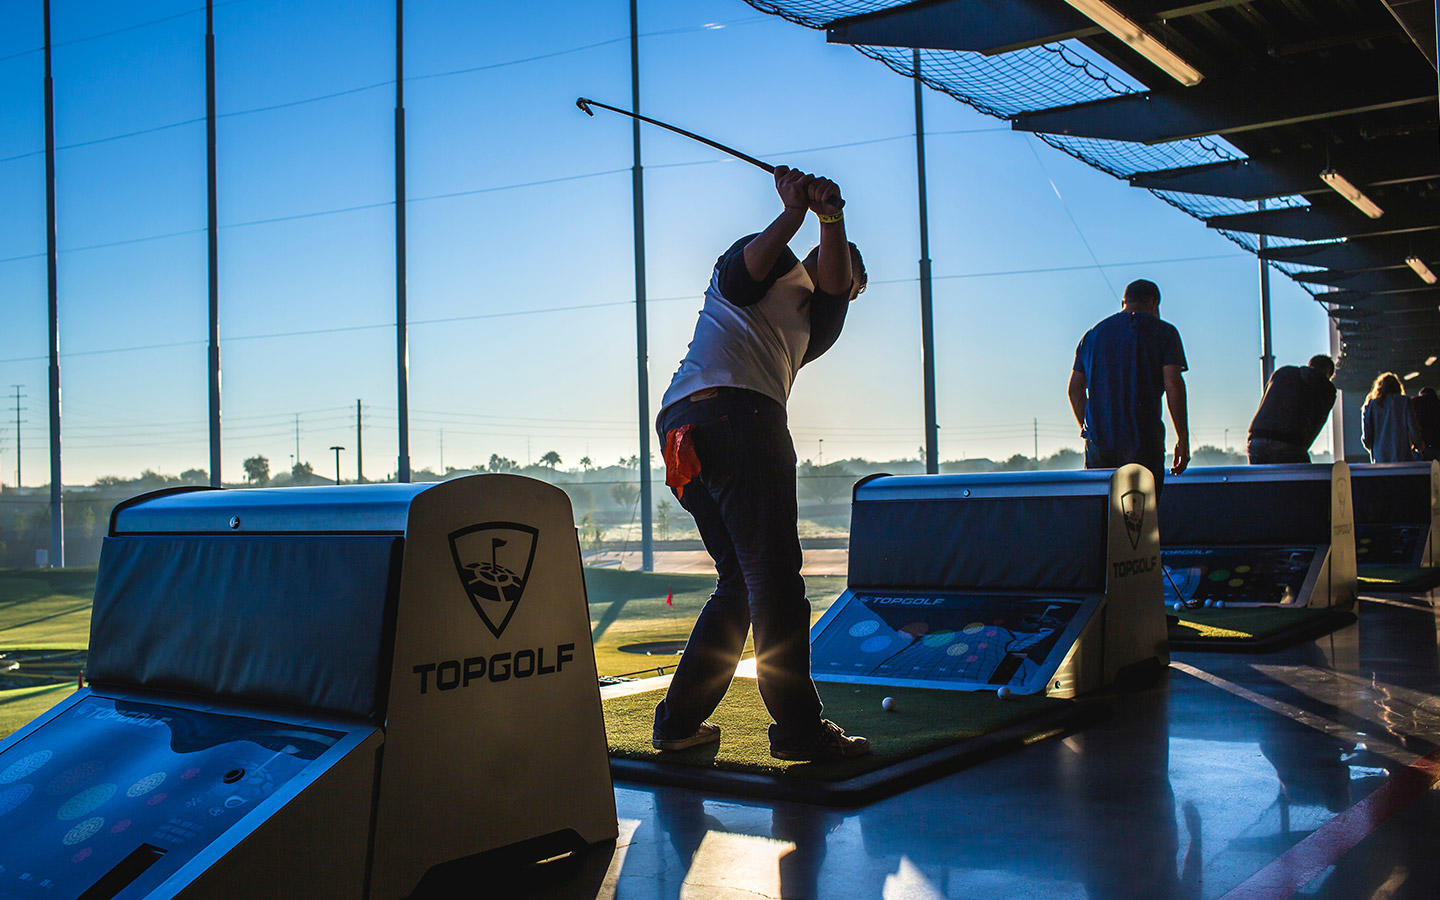 Topgolf Mgm Grand Las Vegas